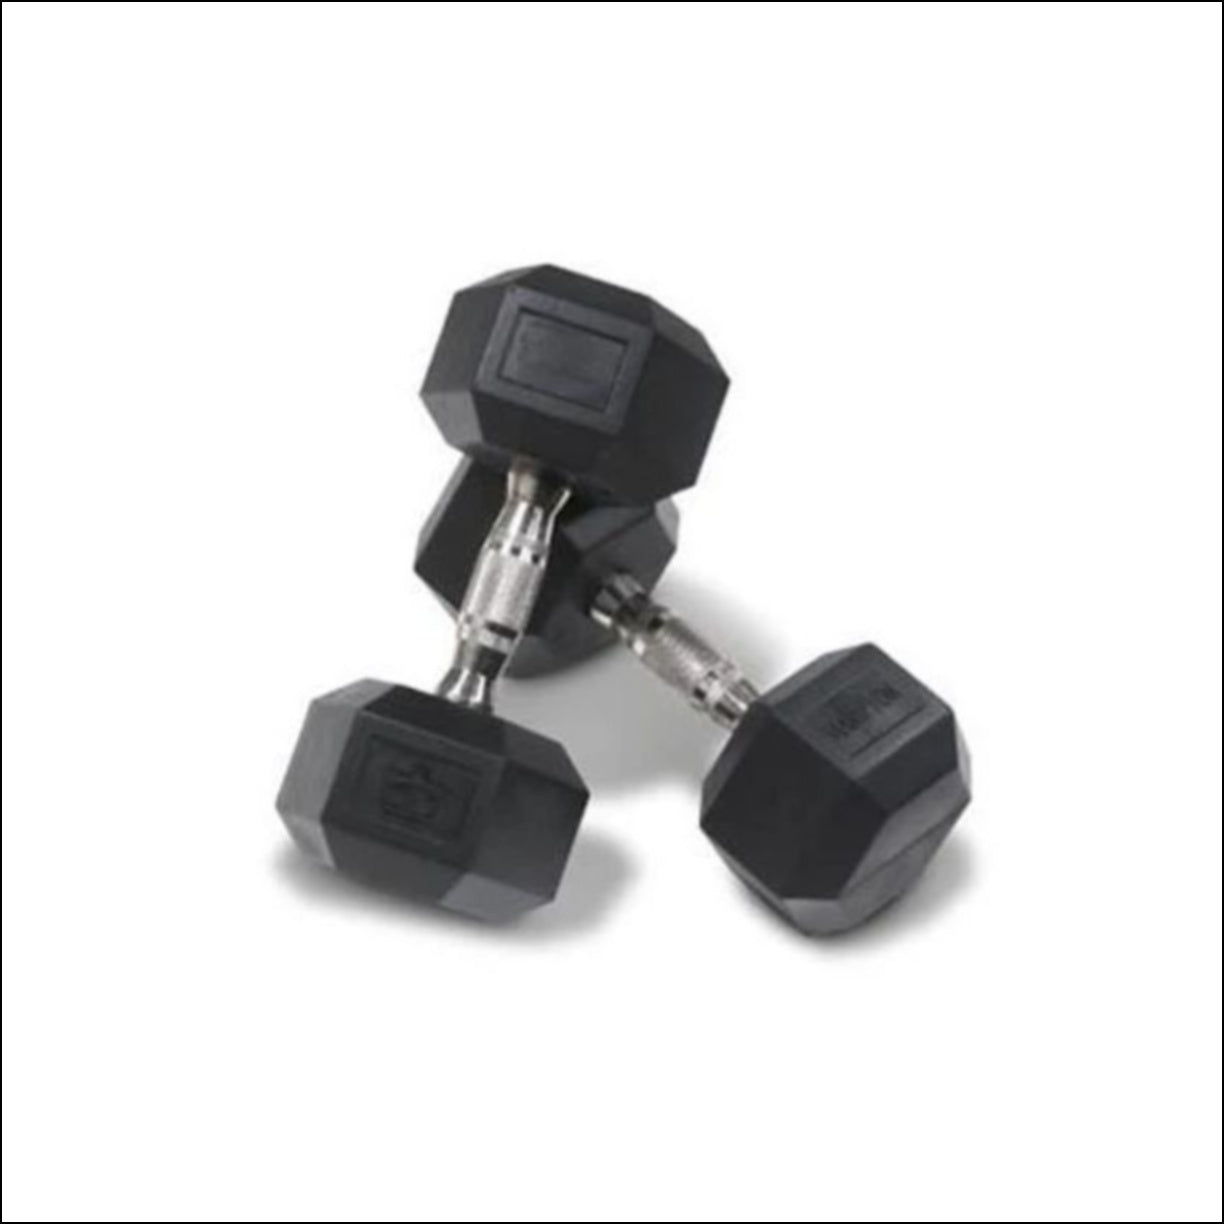 PAIR OF 9-KG RUBBER HEX DUMBBELLS  Muscle Motion Rubber coated hexagonal dumbbells with ergonomic handles are designed for increased comfort and improved durability. Rubber coating reduces noise improves life cycle of the product  (other finishes such as chrome and cast iron are subject to chipping and rust). Rubber coated dumbbells are also kinder on floor surfaces. The hexagonal shaped ends are designed to prevent the dumbbell from rolling on the floor or dumbbell rack.